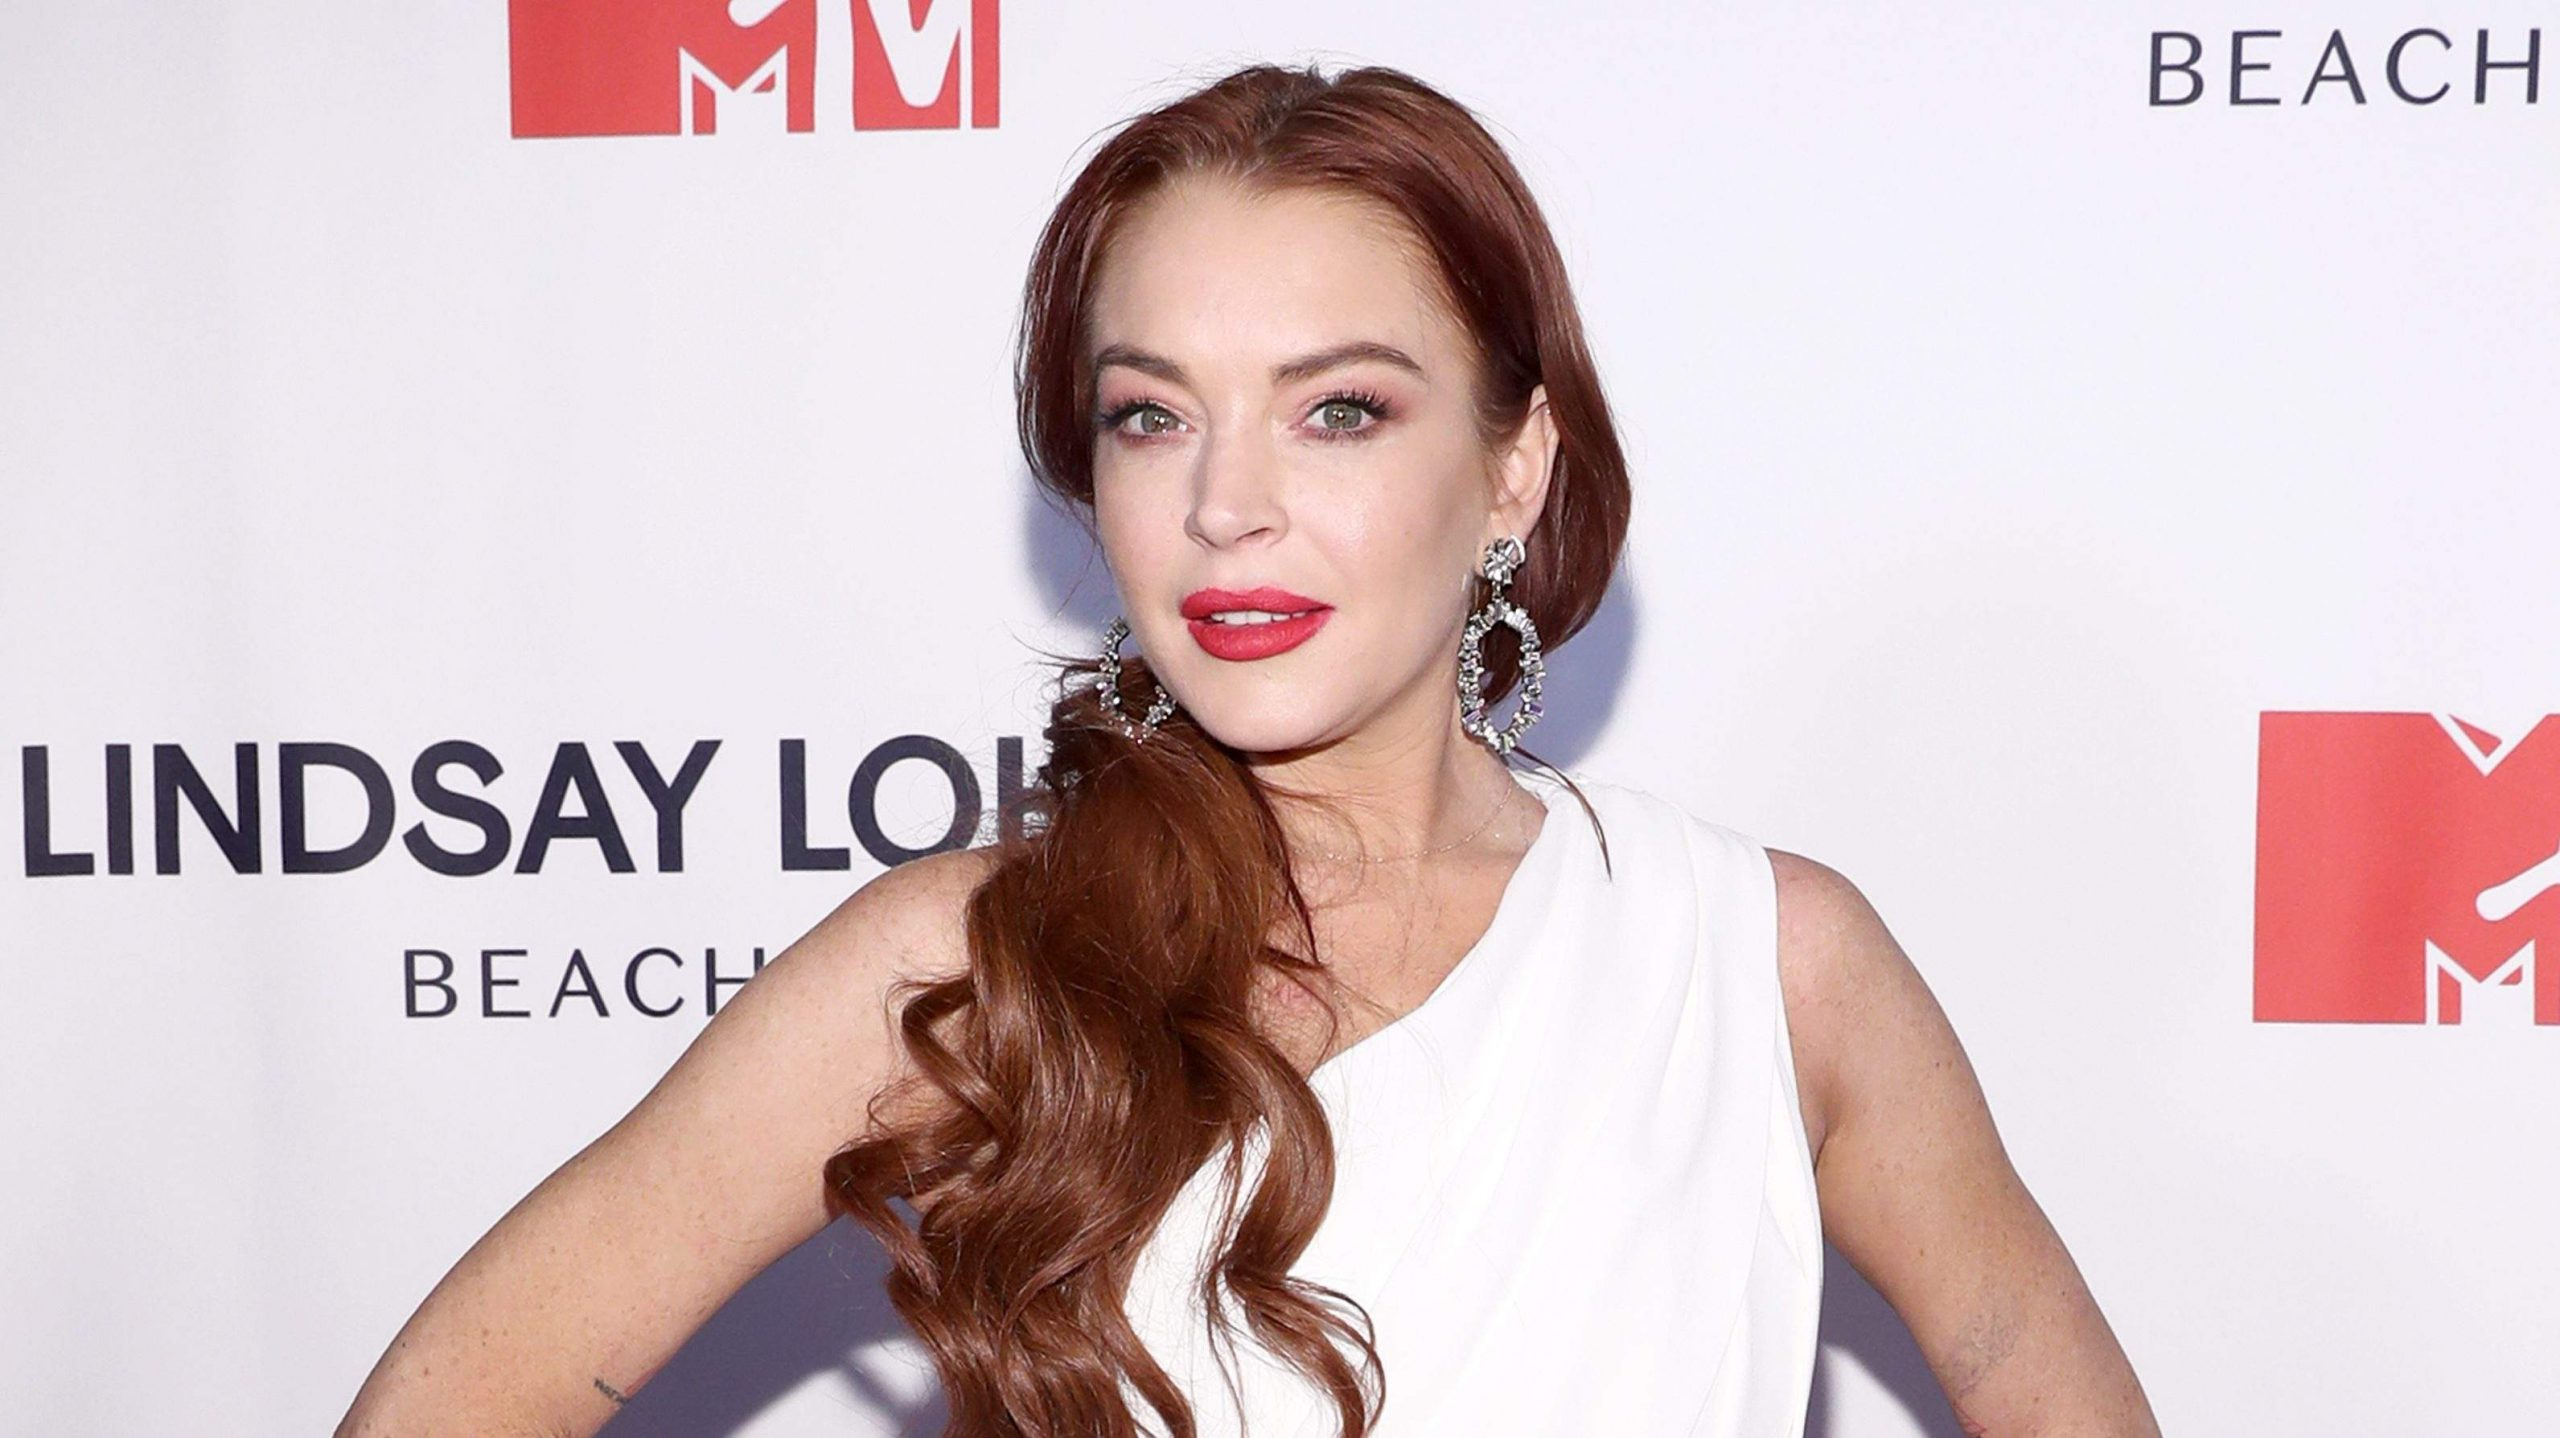 Lindsay Lohan Family 2020, Biography, and Net Worth Updates